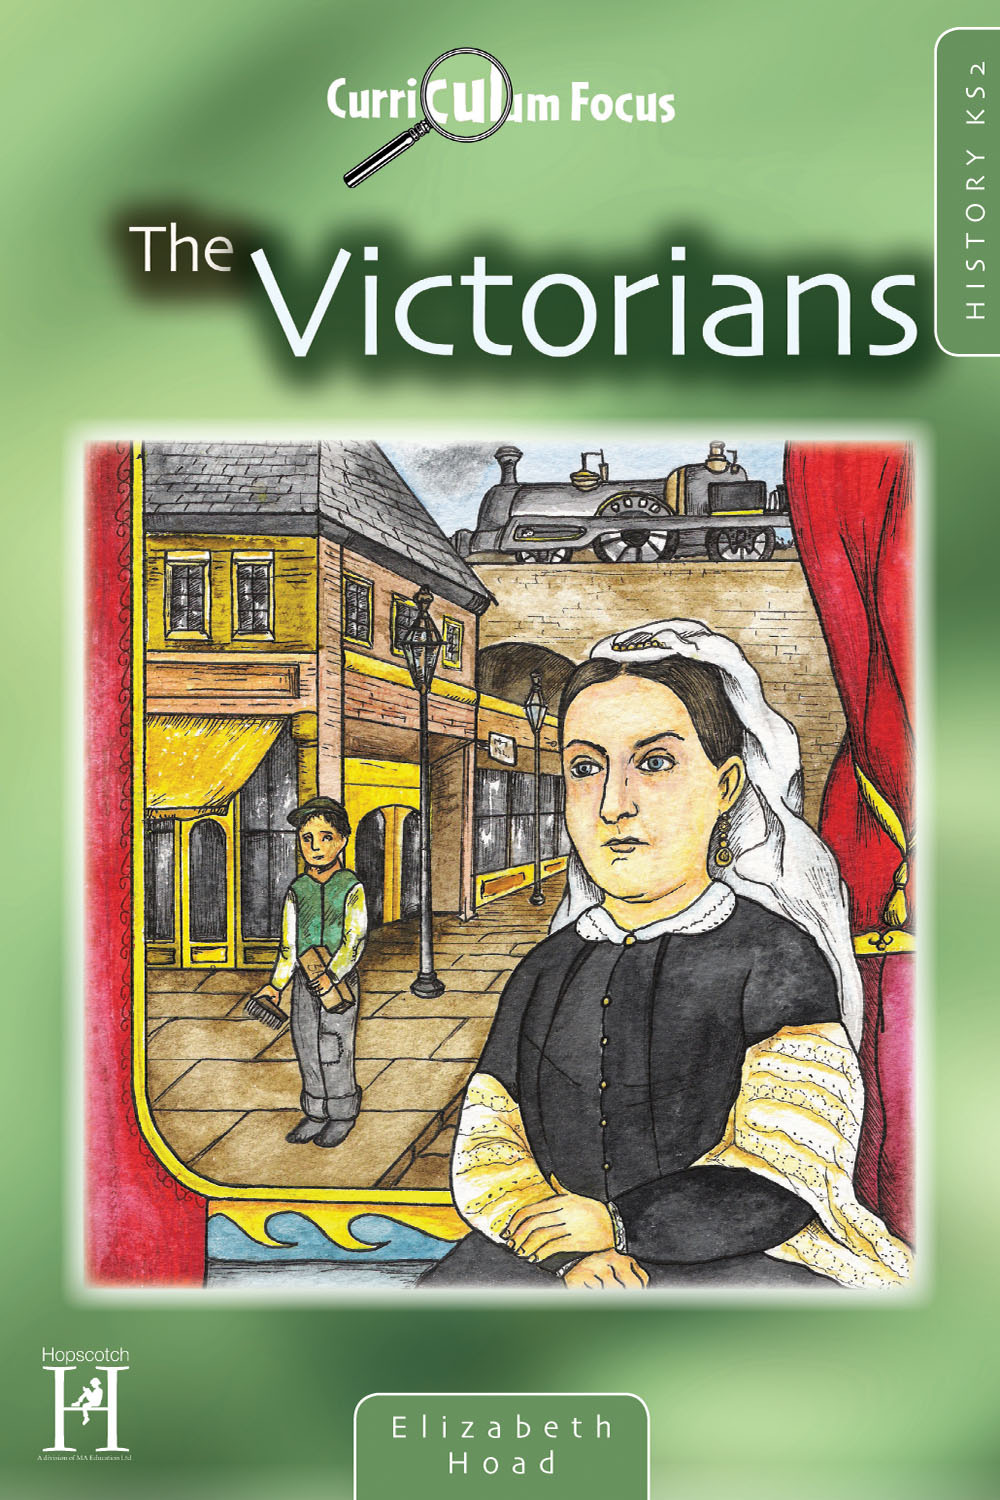 Hoad, Elizabeth - Curriculum Focus - History KS2, ebook